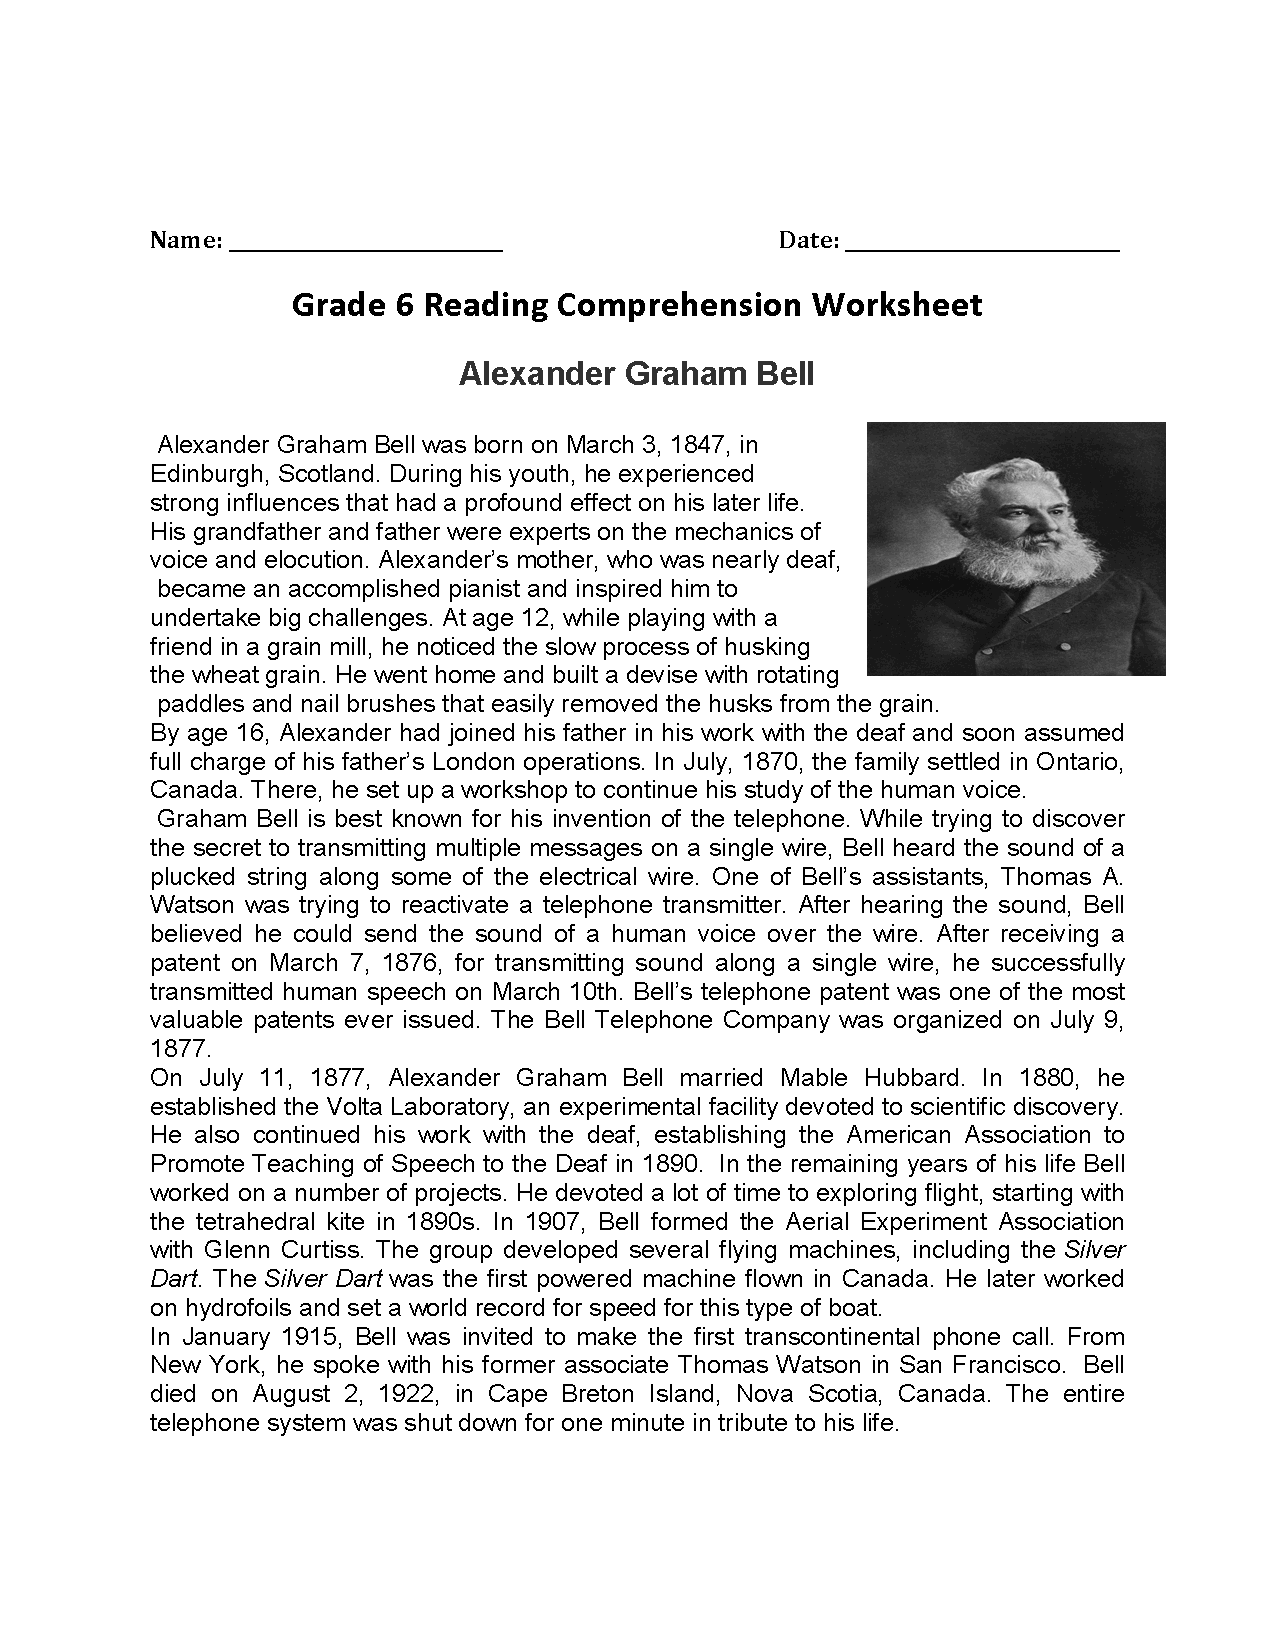 Alexander Graham Bell Sixth Grade Reading Worksheets